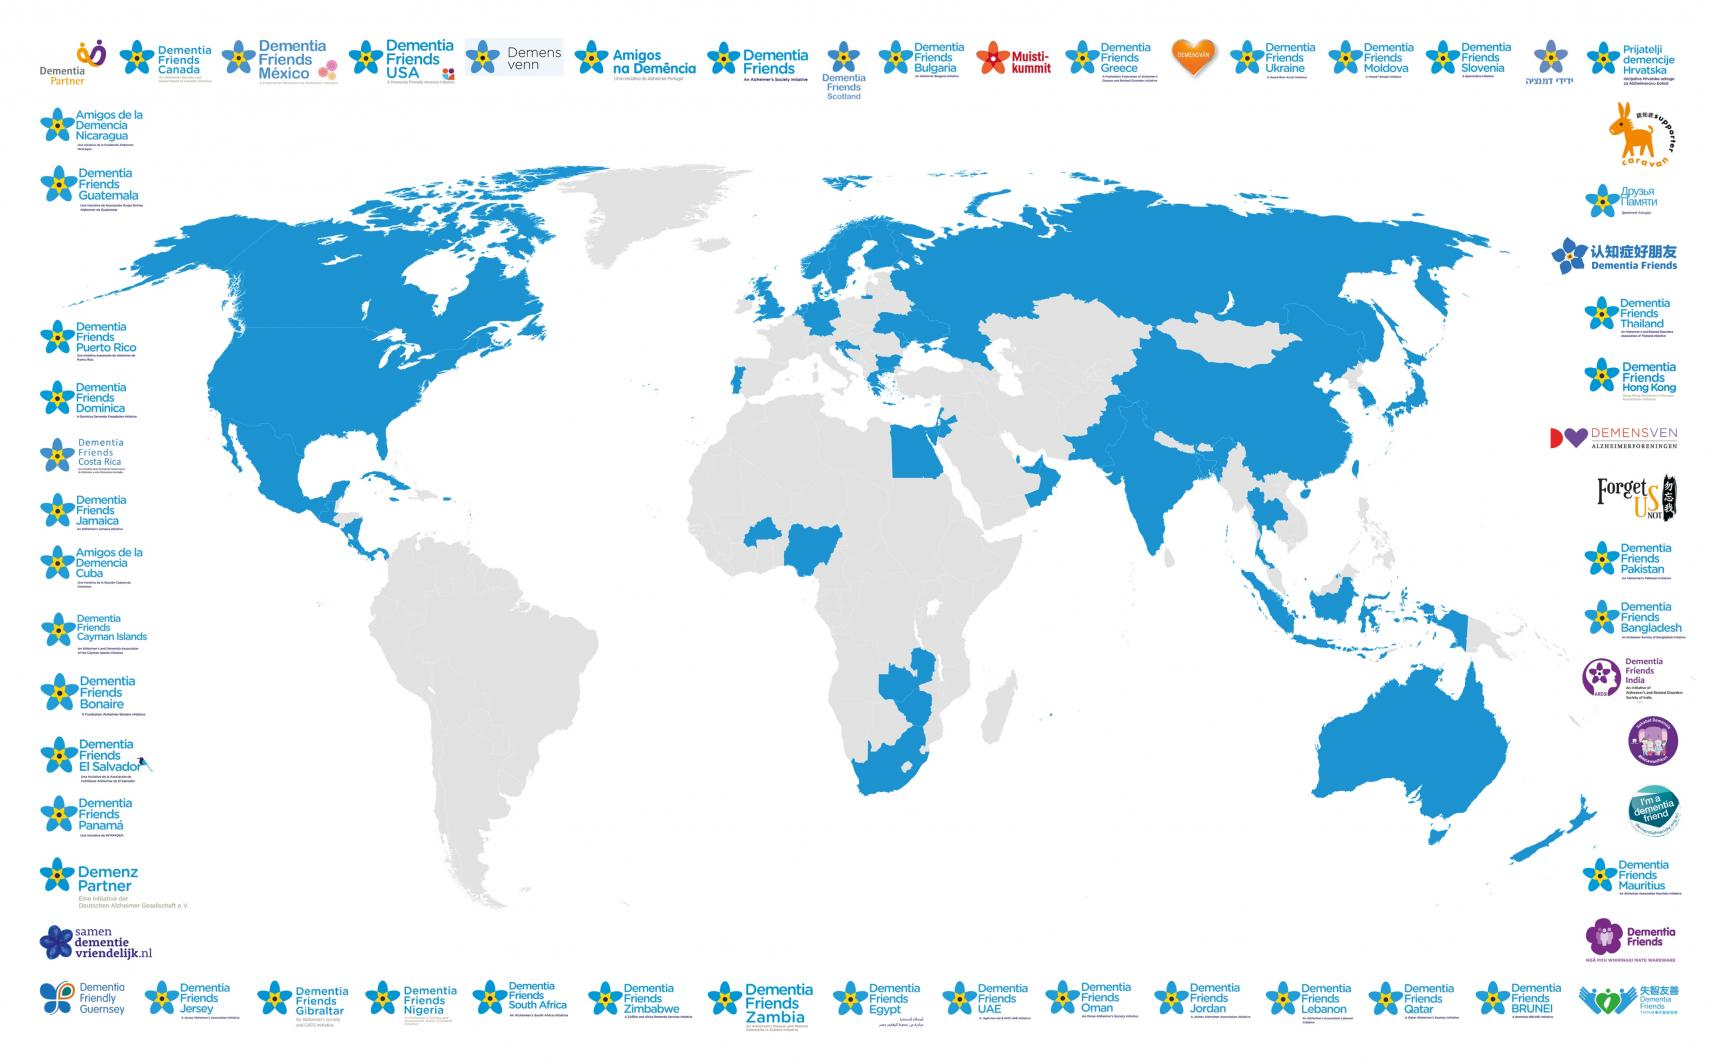 Global Dementia Friends on a map